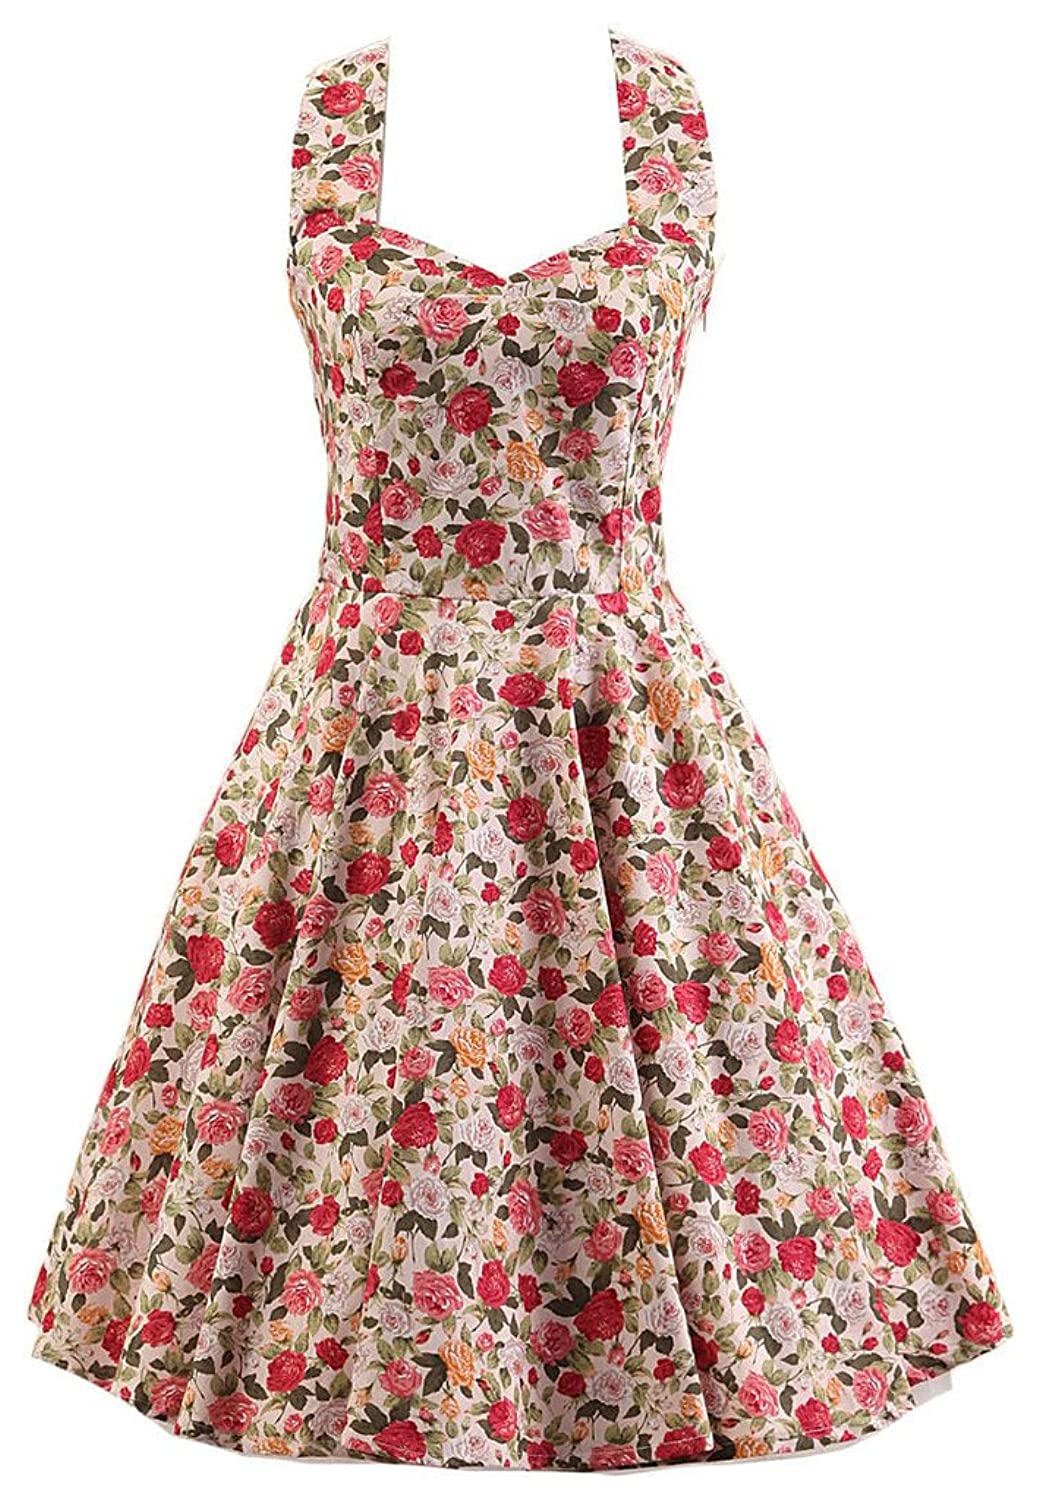 Speerise Womens 50s Vintage Style Halter Rockabilly Swing Cocktail Party Dress